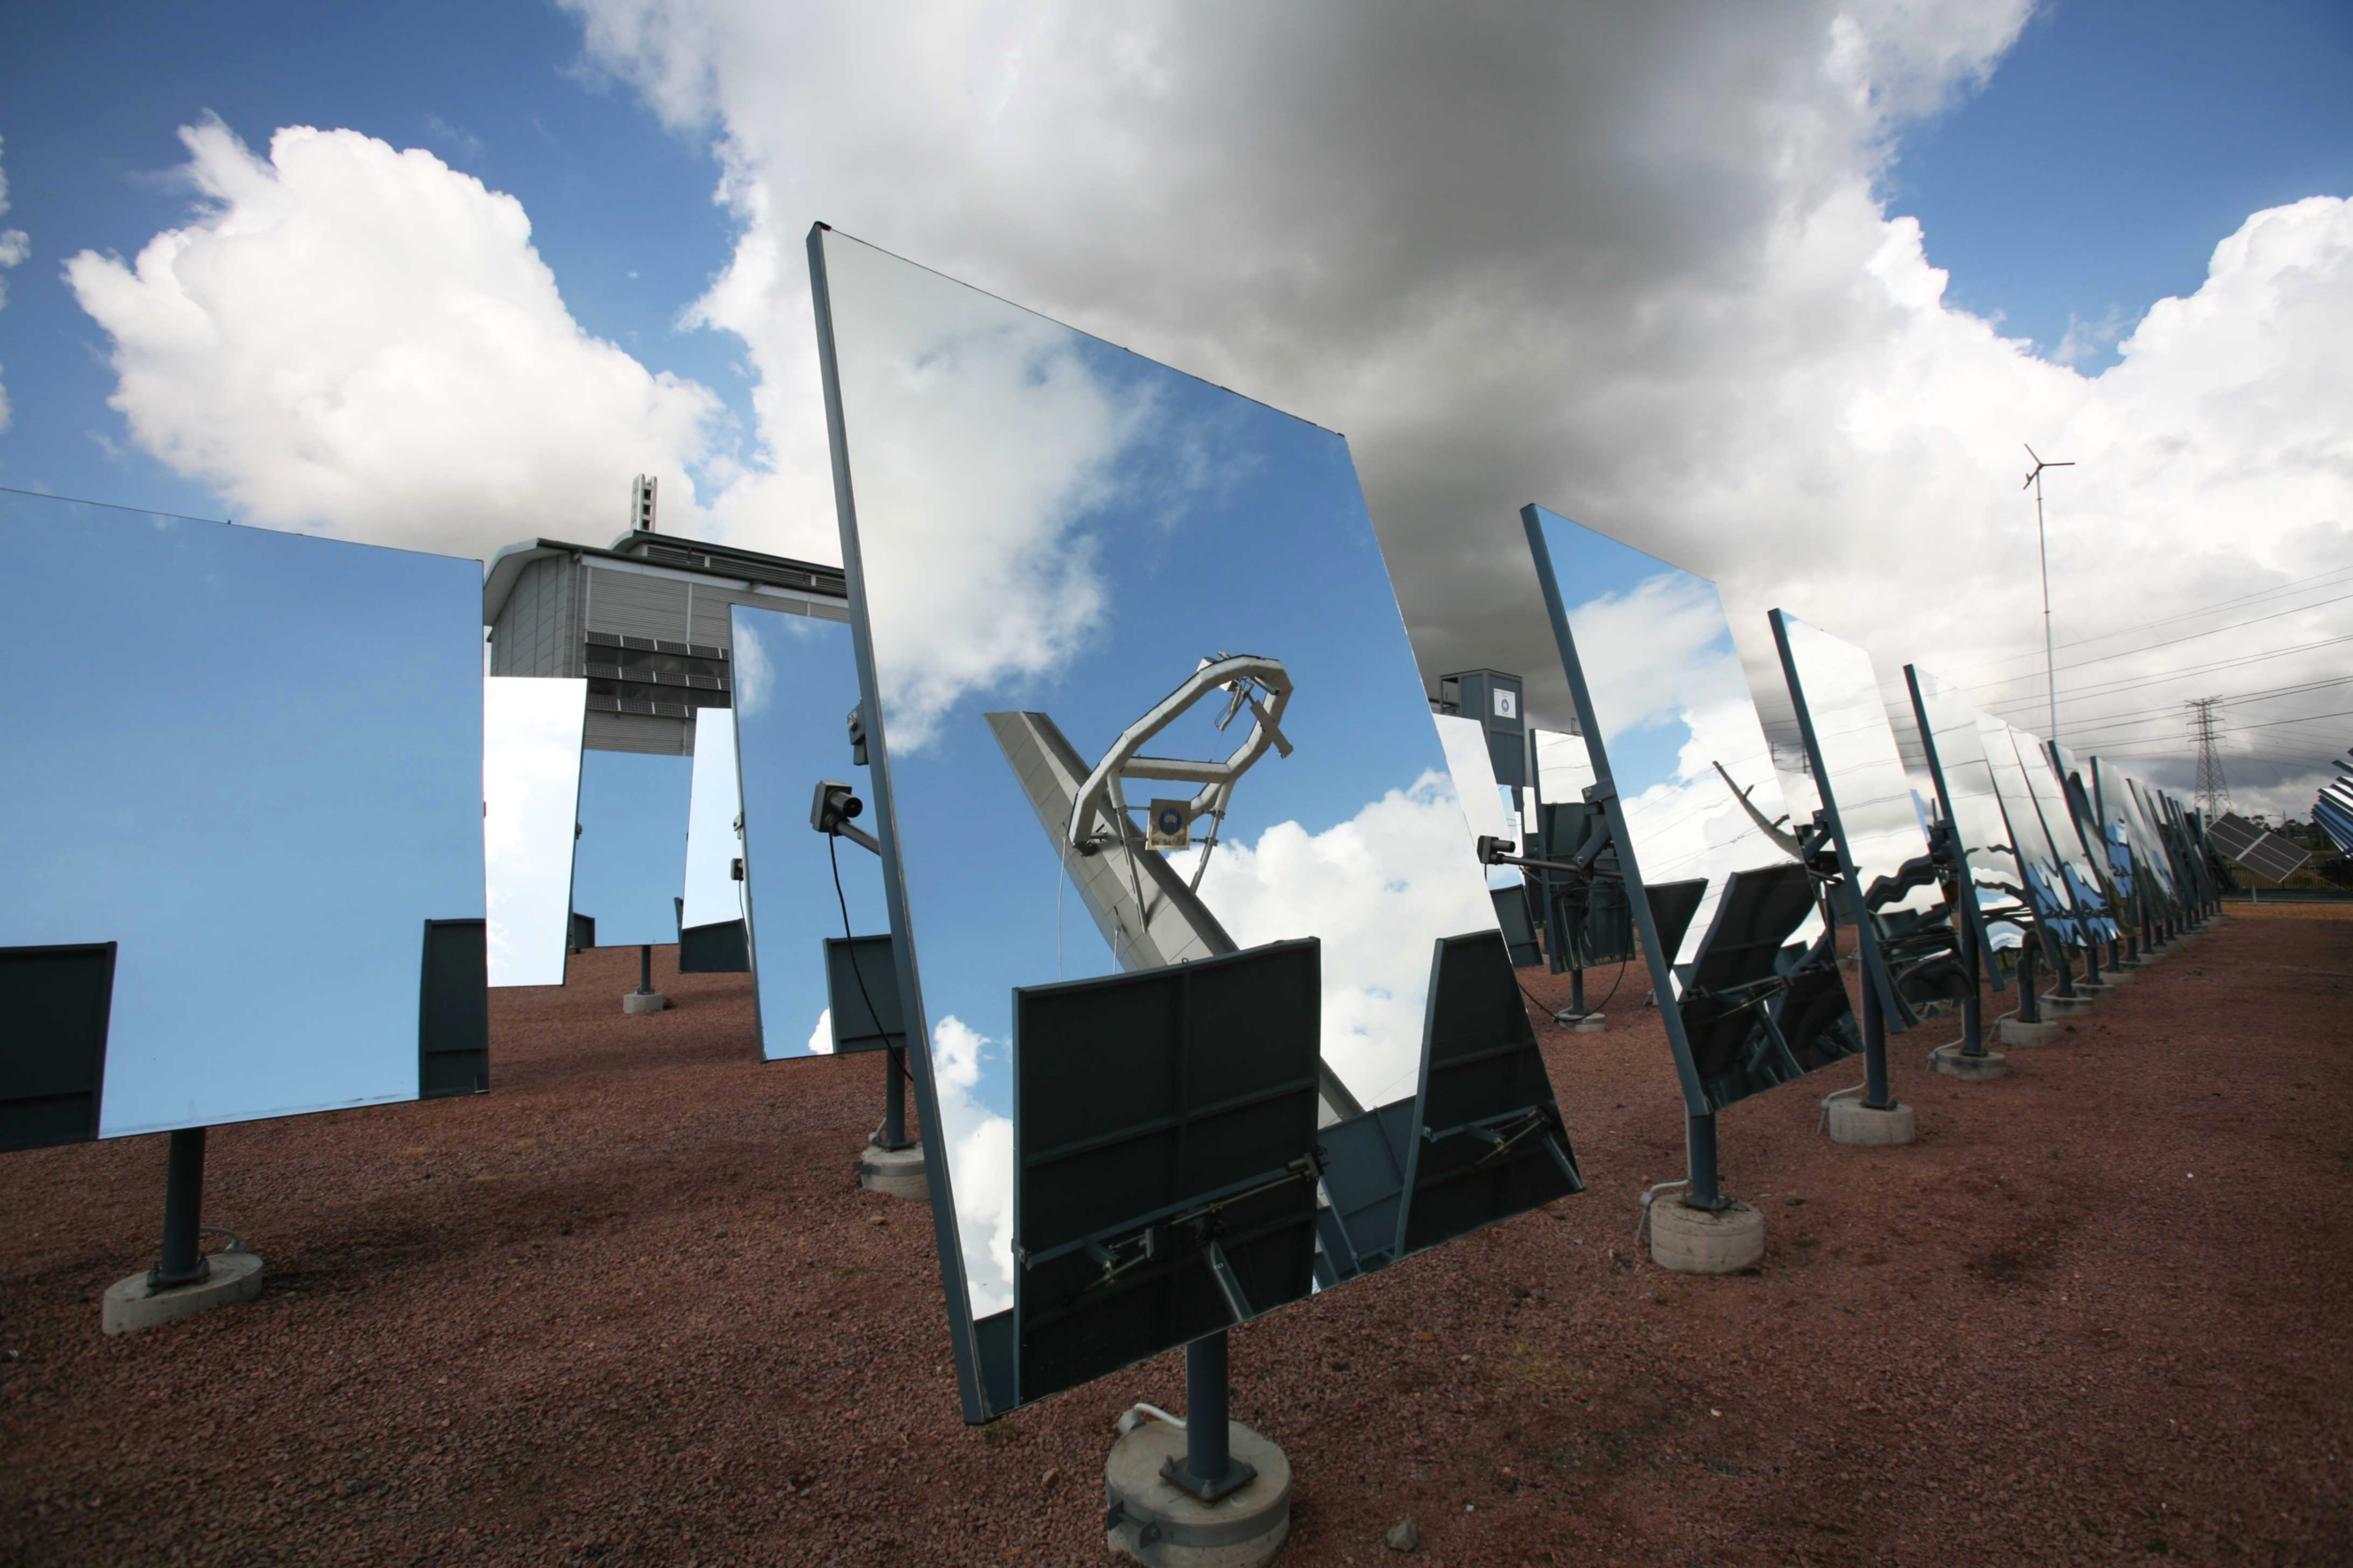 Rows of mirrors at a heliostat mirror field under a blue sky with small clouds. Reflected in one mirror is the collector tower.